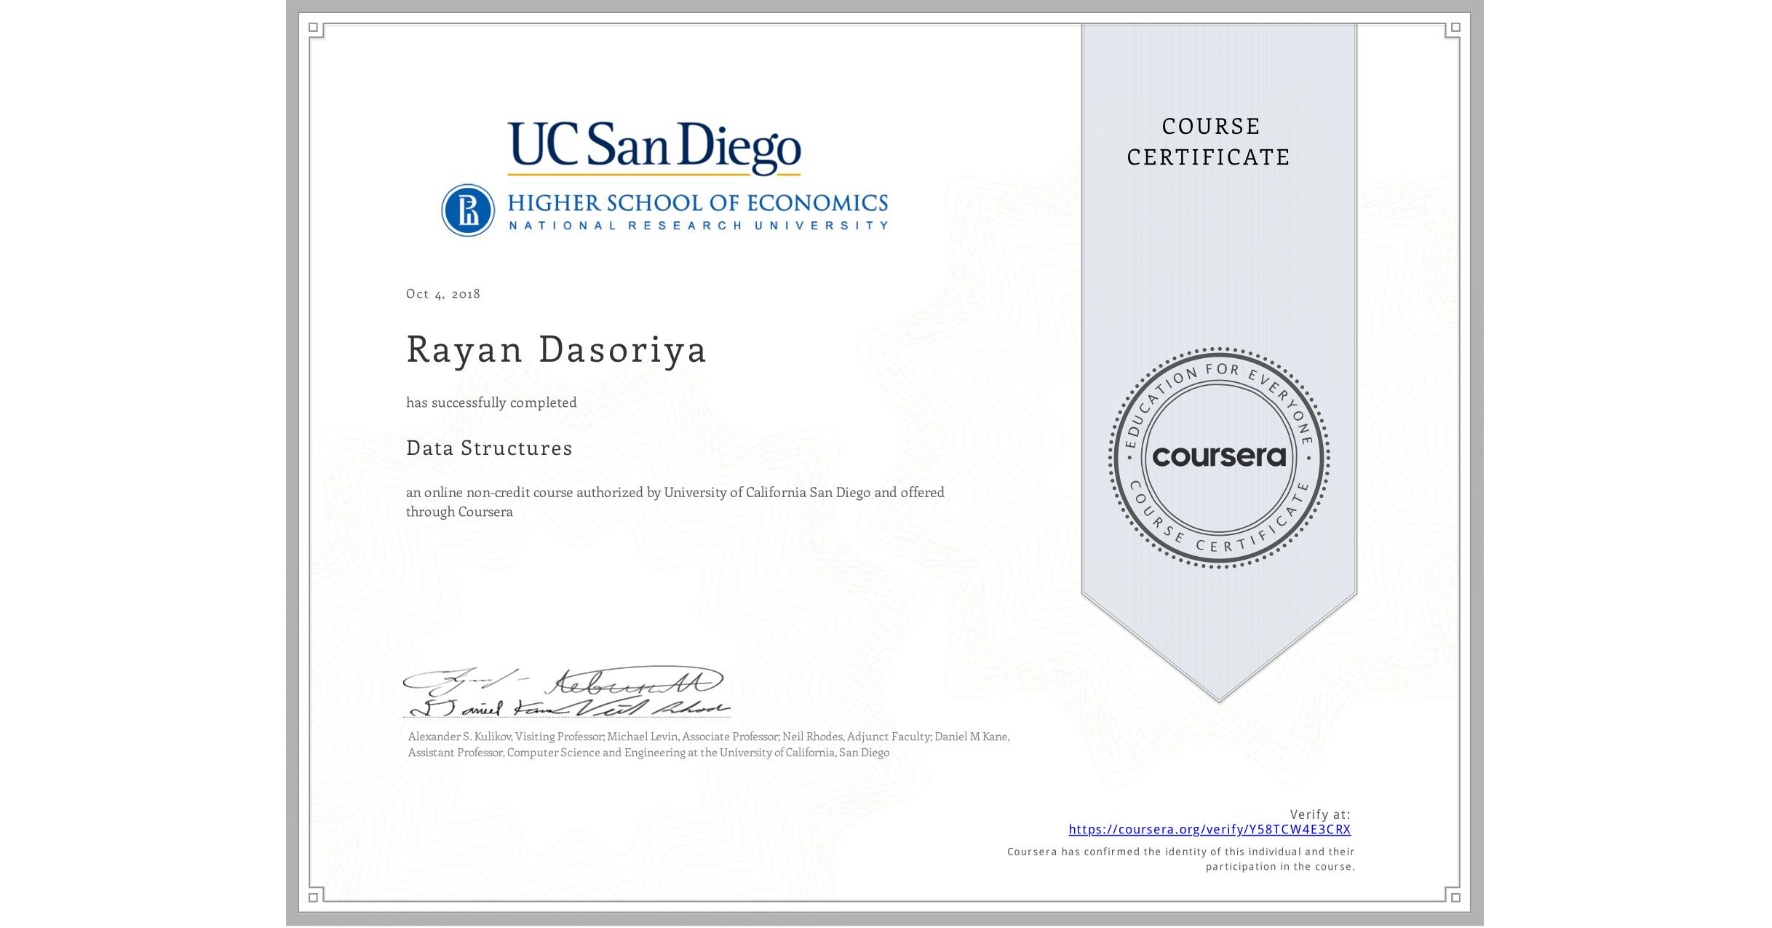 View certificate for Rayan Dasoriya, Data Structures, an online non-credit course authorized by University of California San Diego & National Research University Higher School of Economics and offered through Coursera